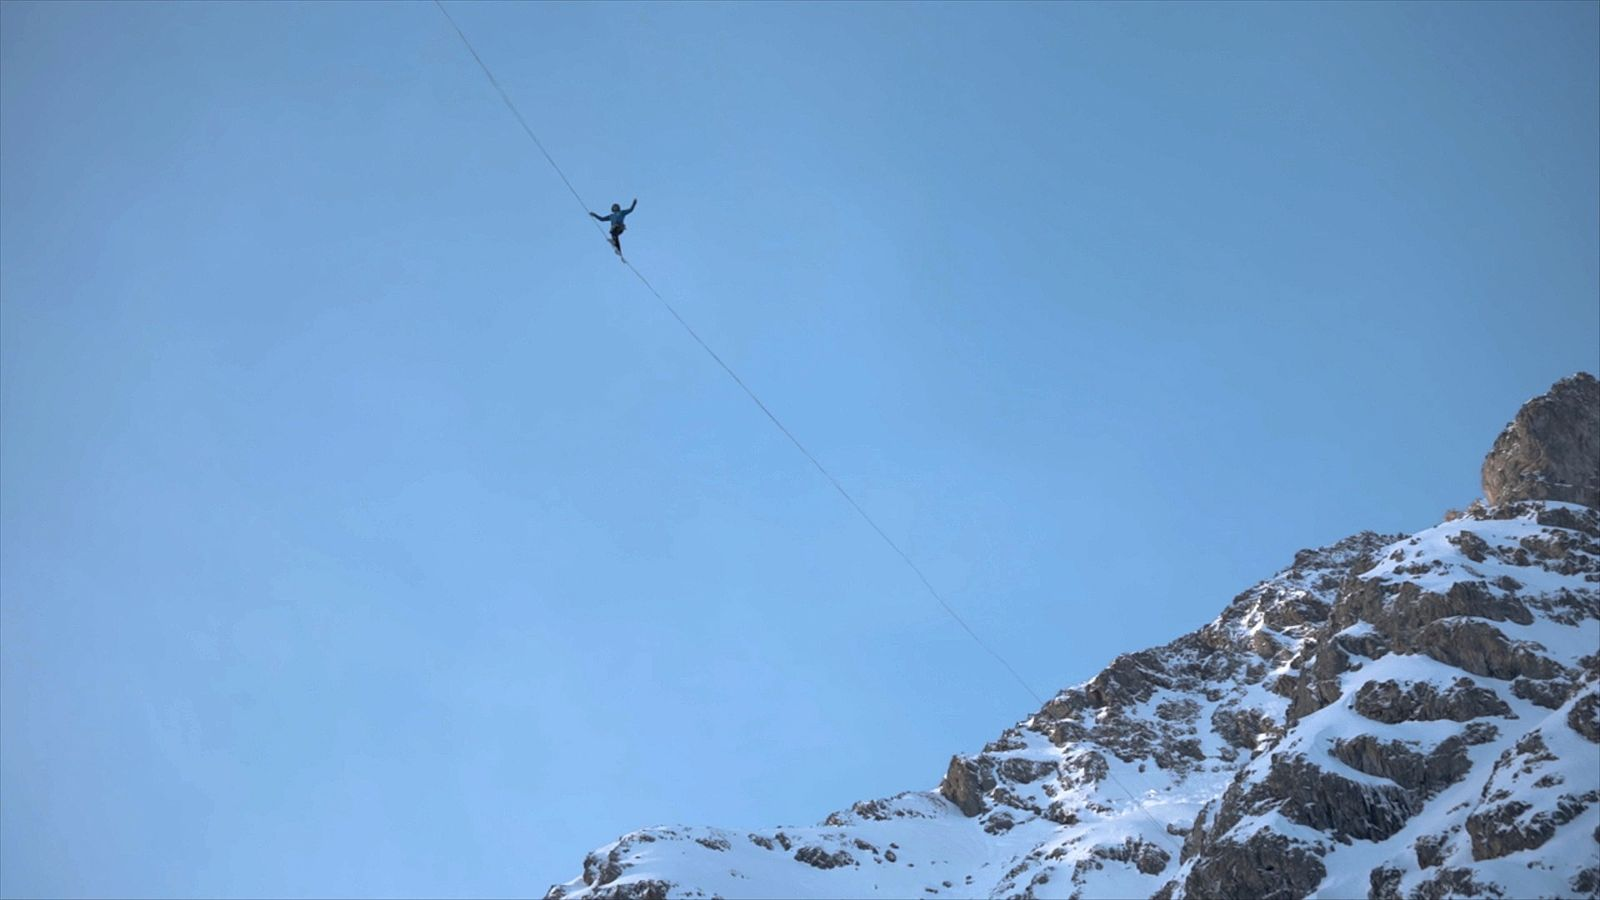 Champion High Wire Performers Cross Between Frozen Waterfalls in the Alps